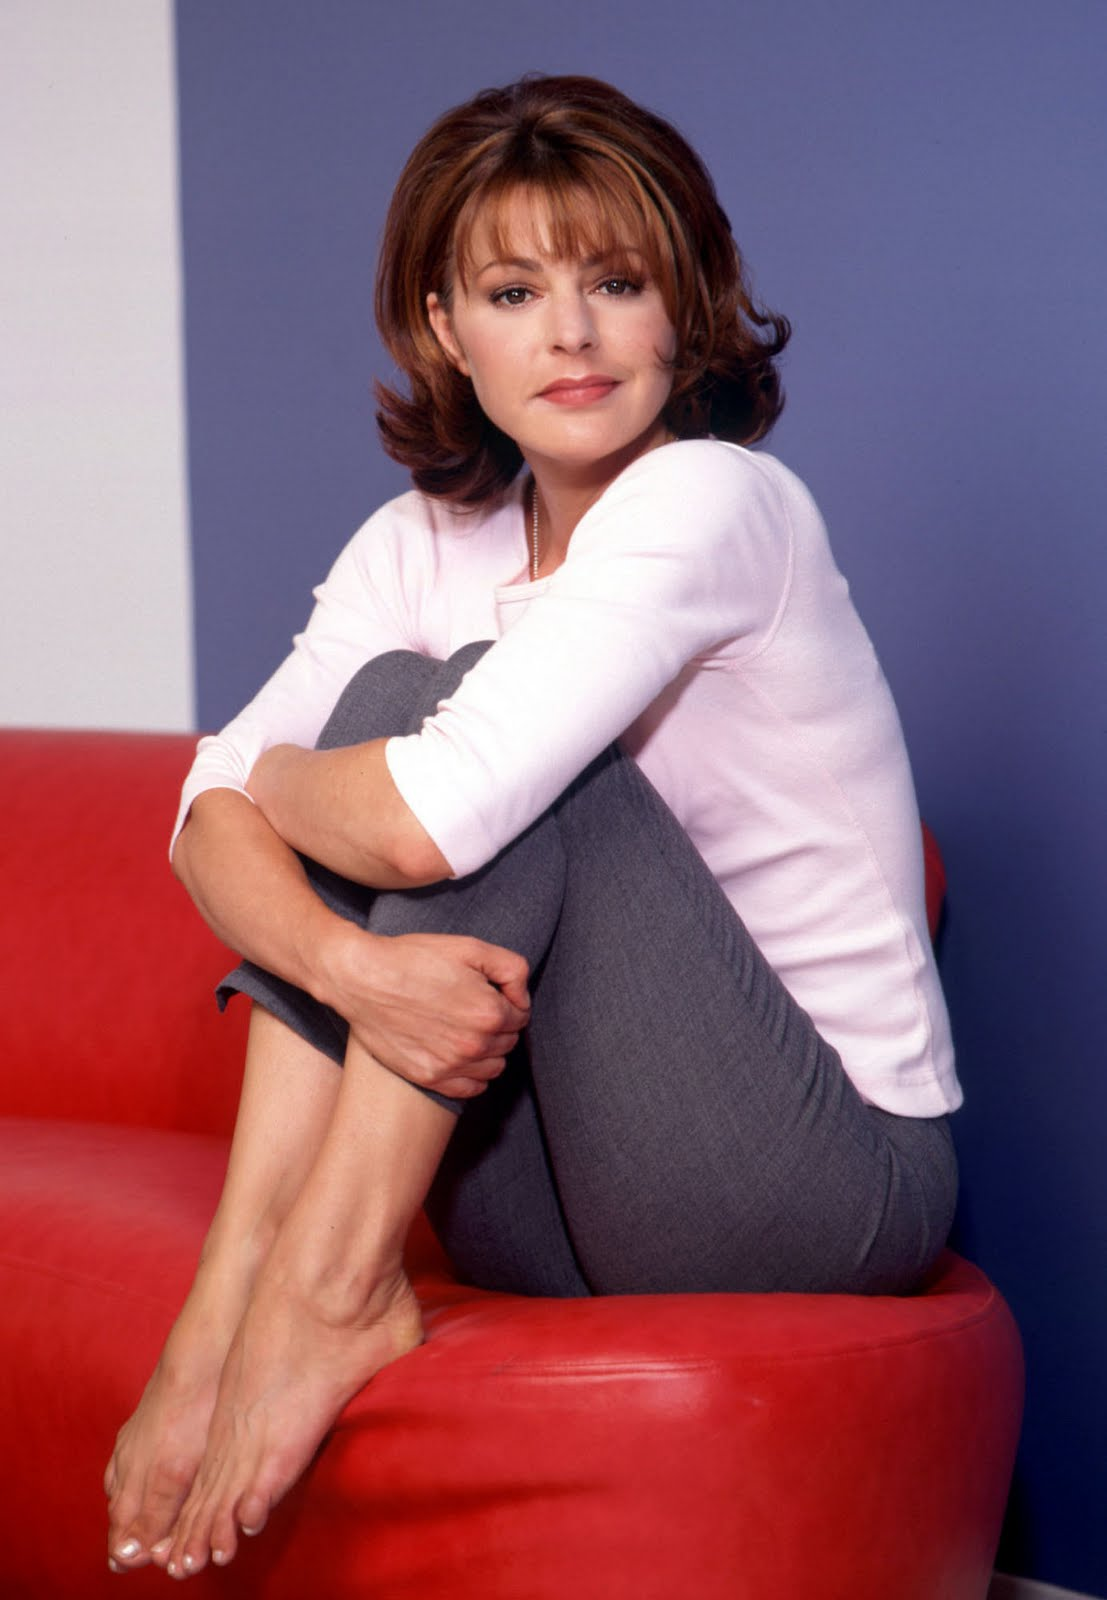 images Jane Leeves (born 1961)